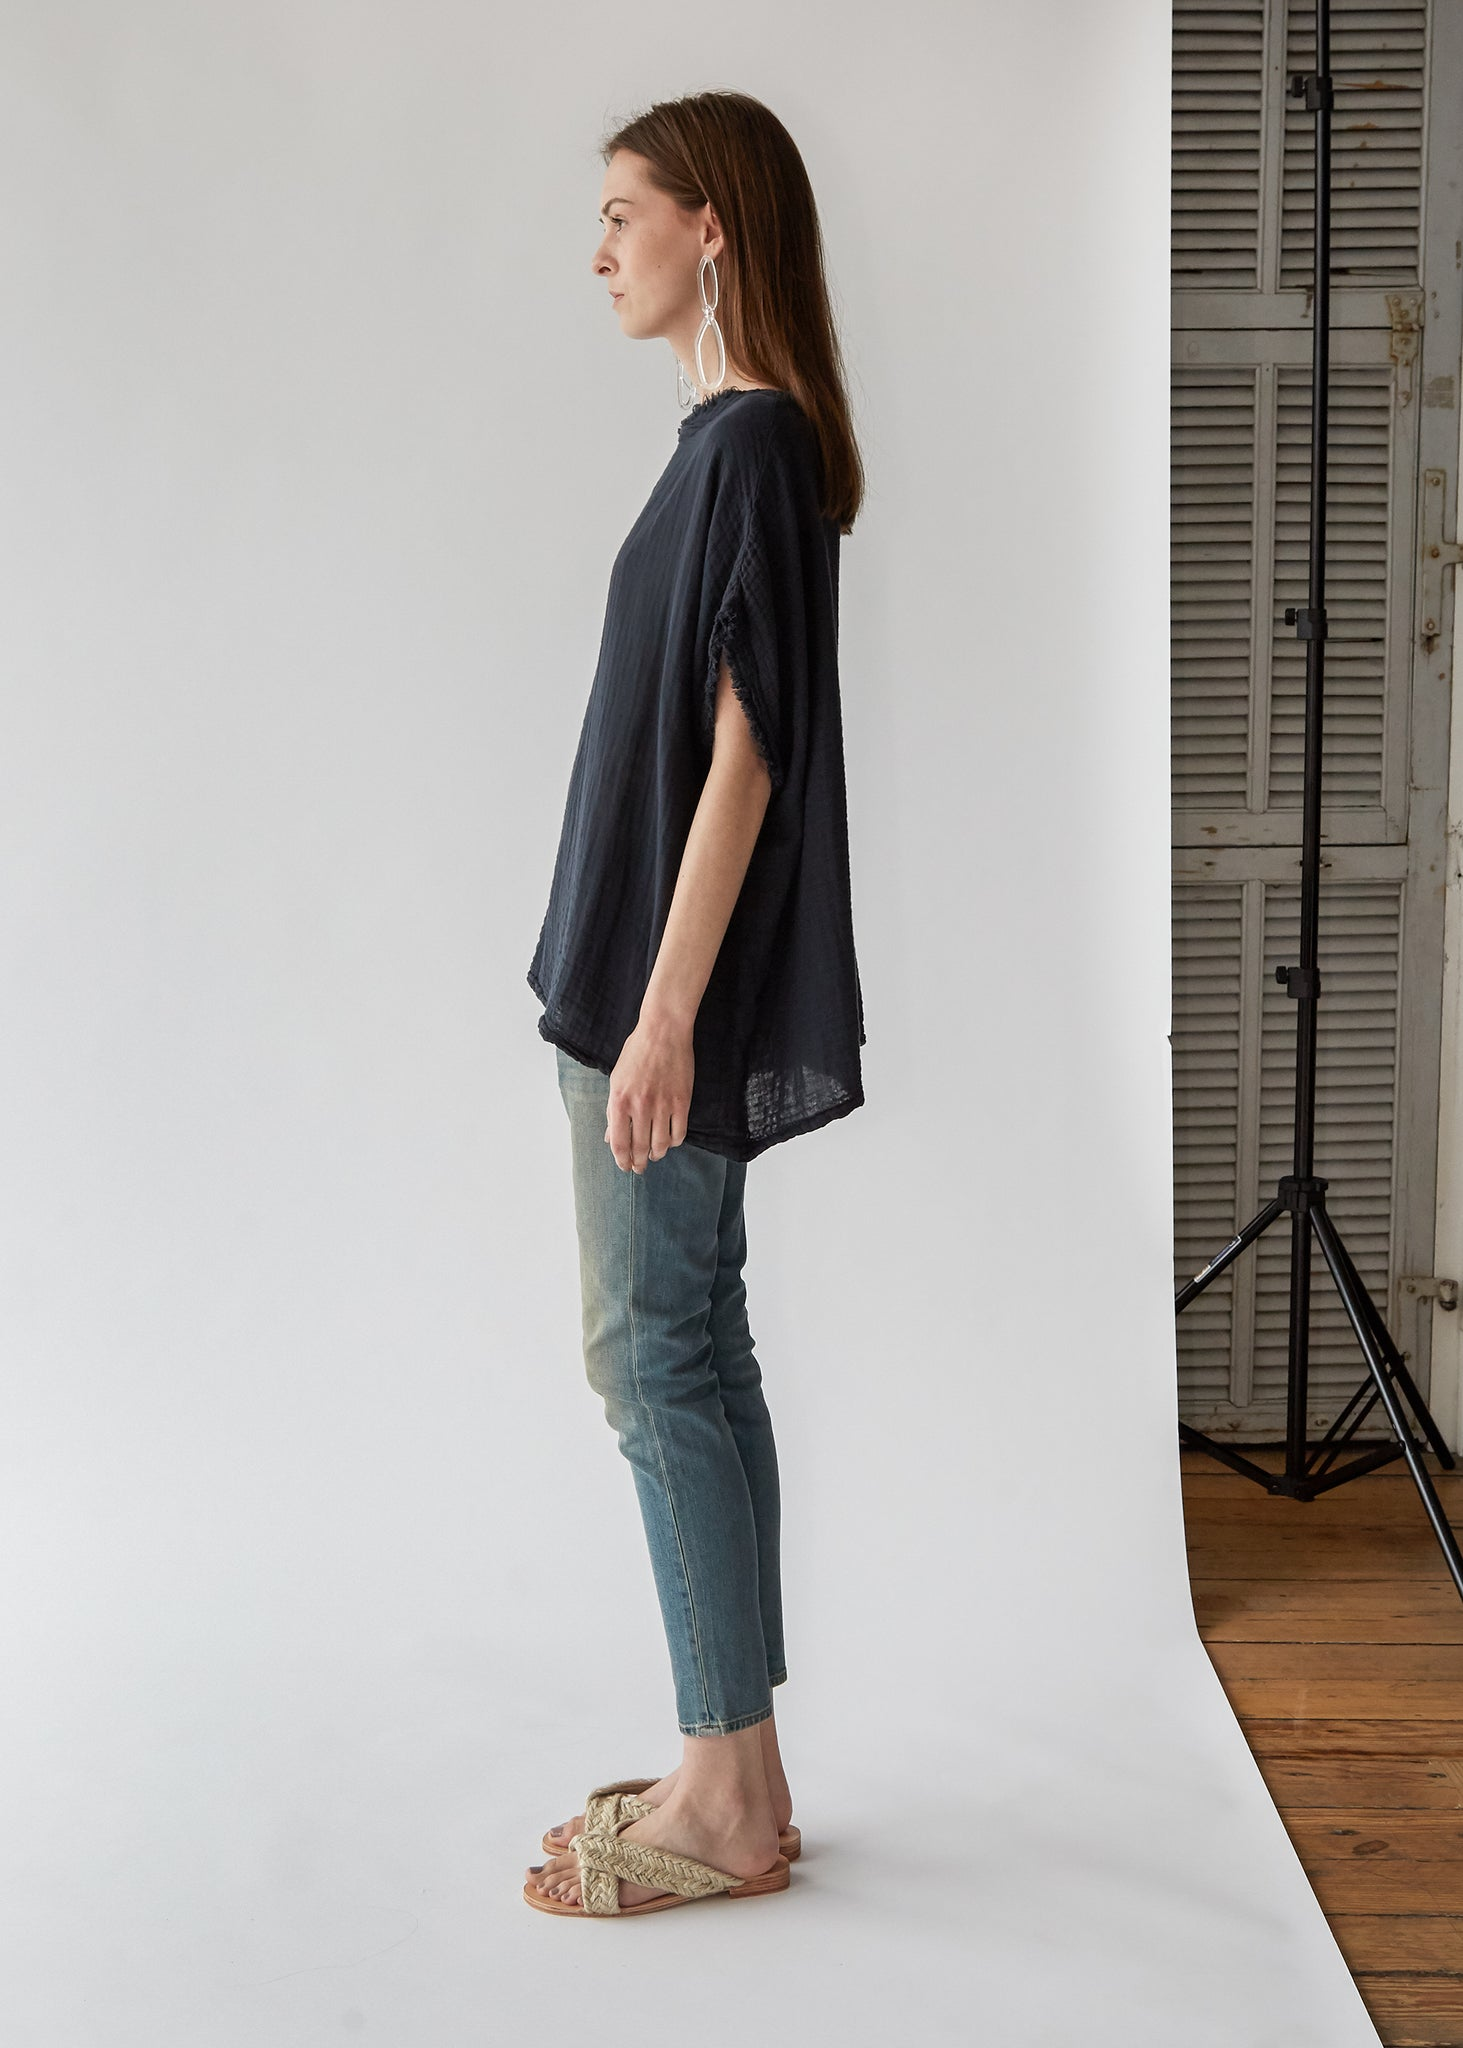 Double Gauze Top in Dark Navy - SOLD OUT